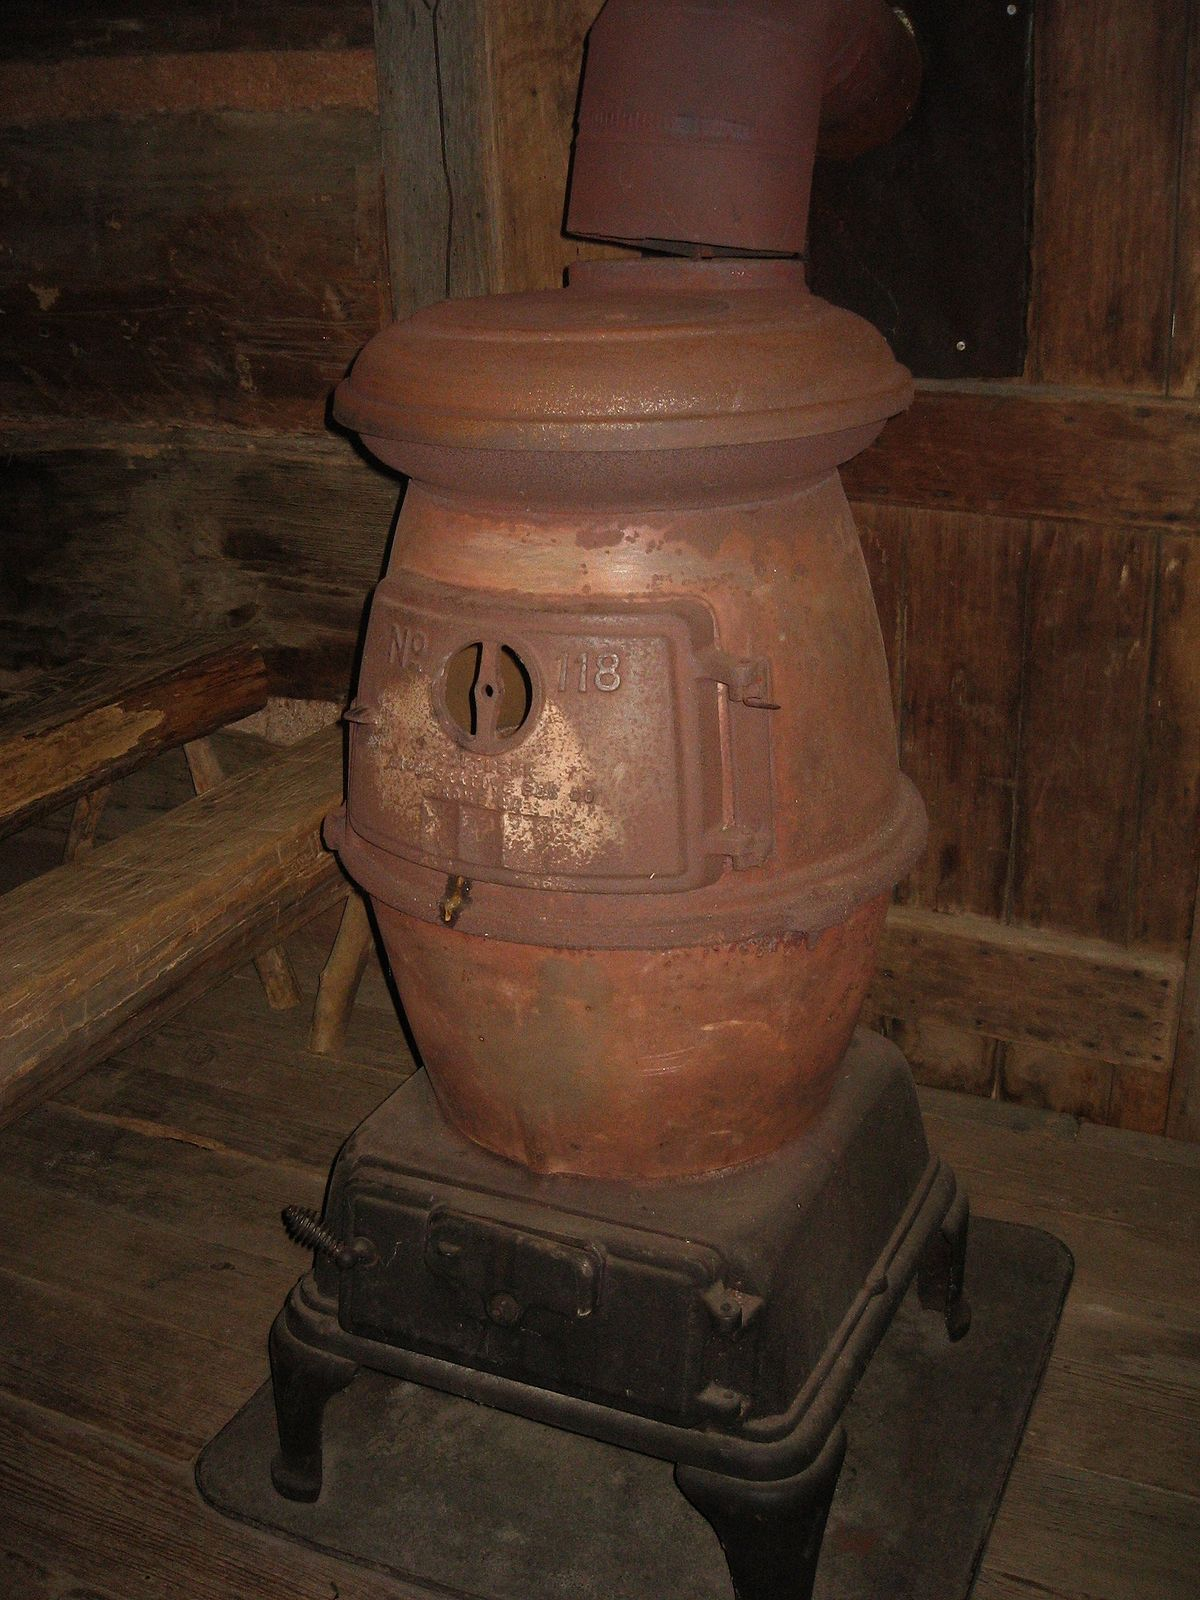 - Potbelly Stove - Wikipedia